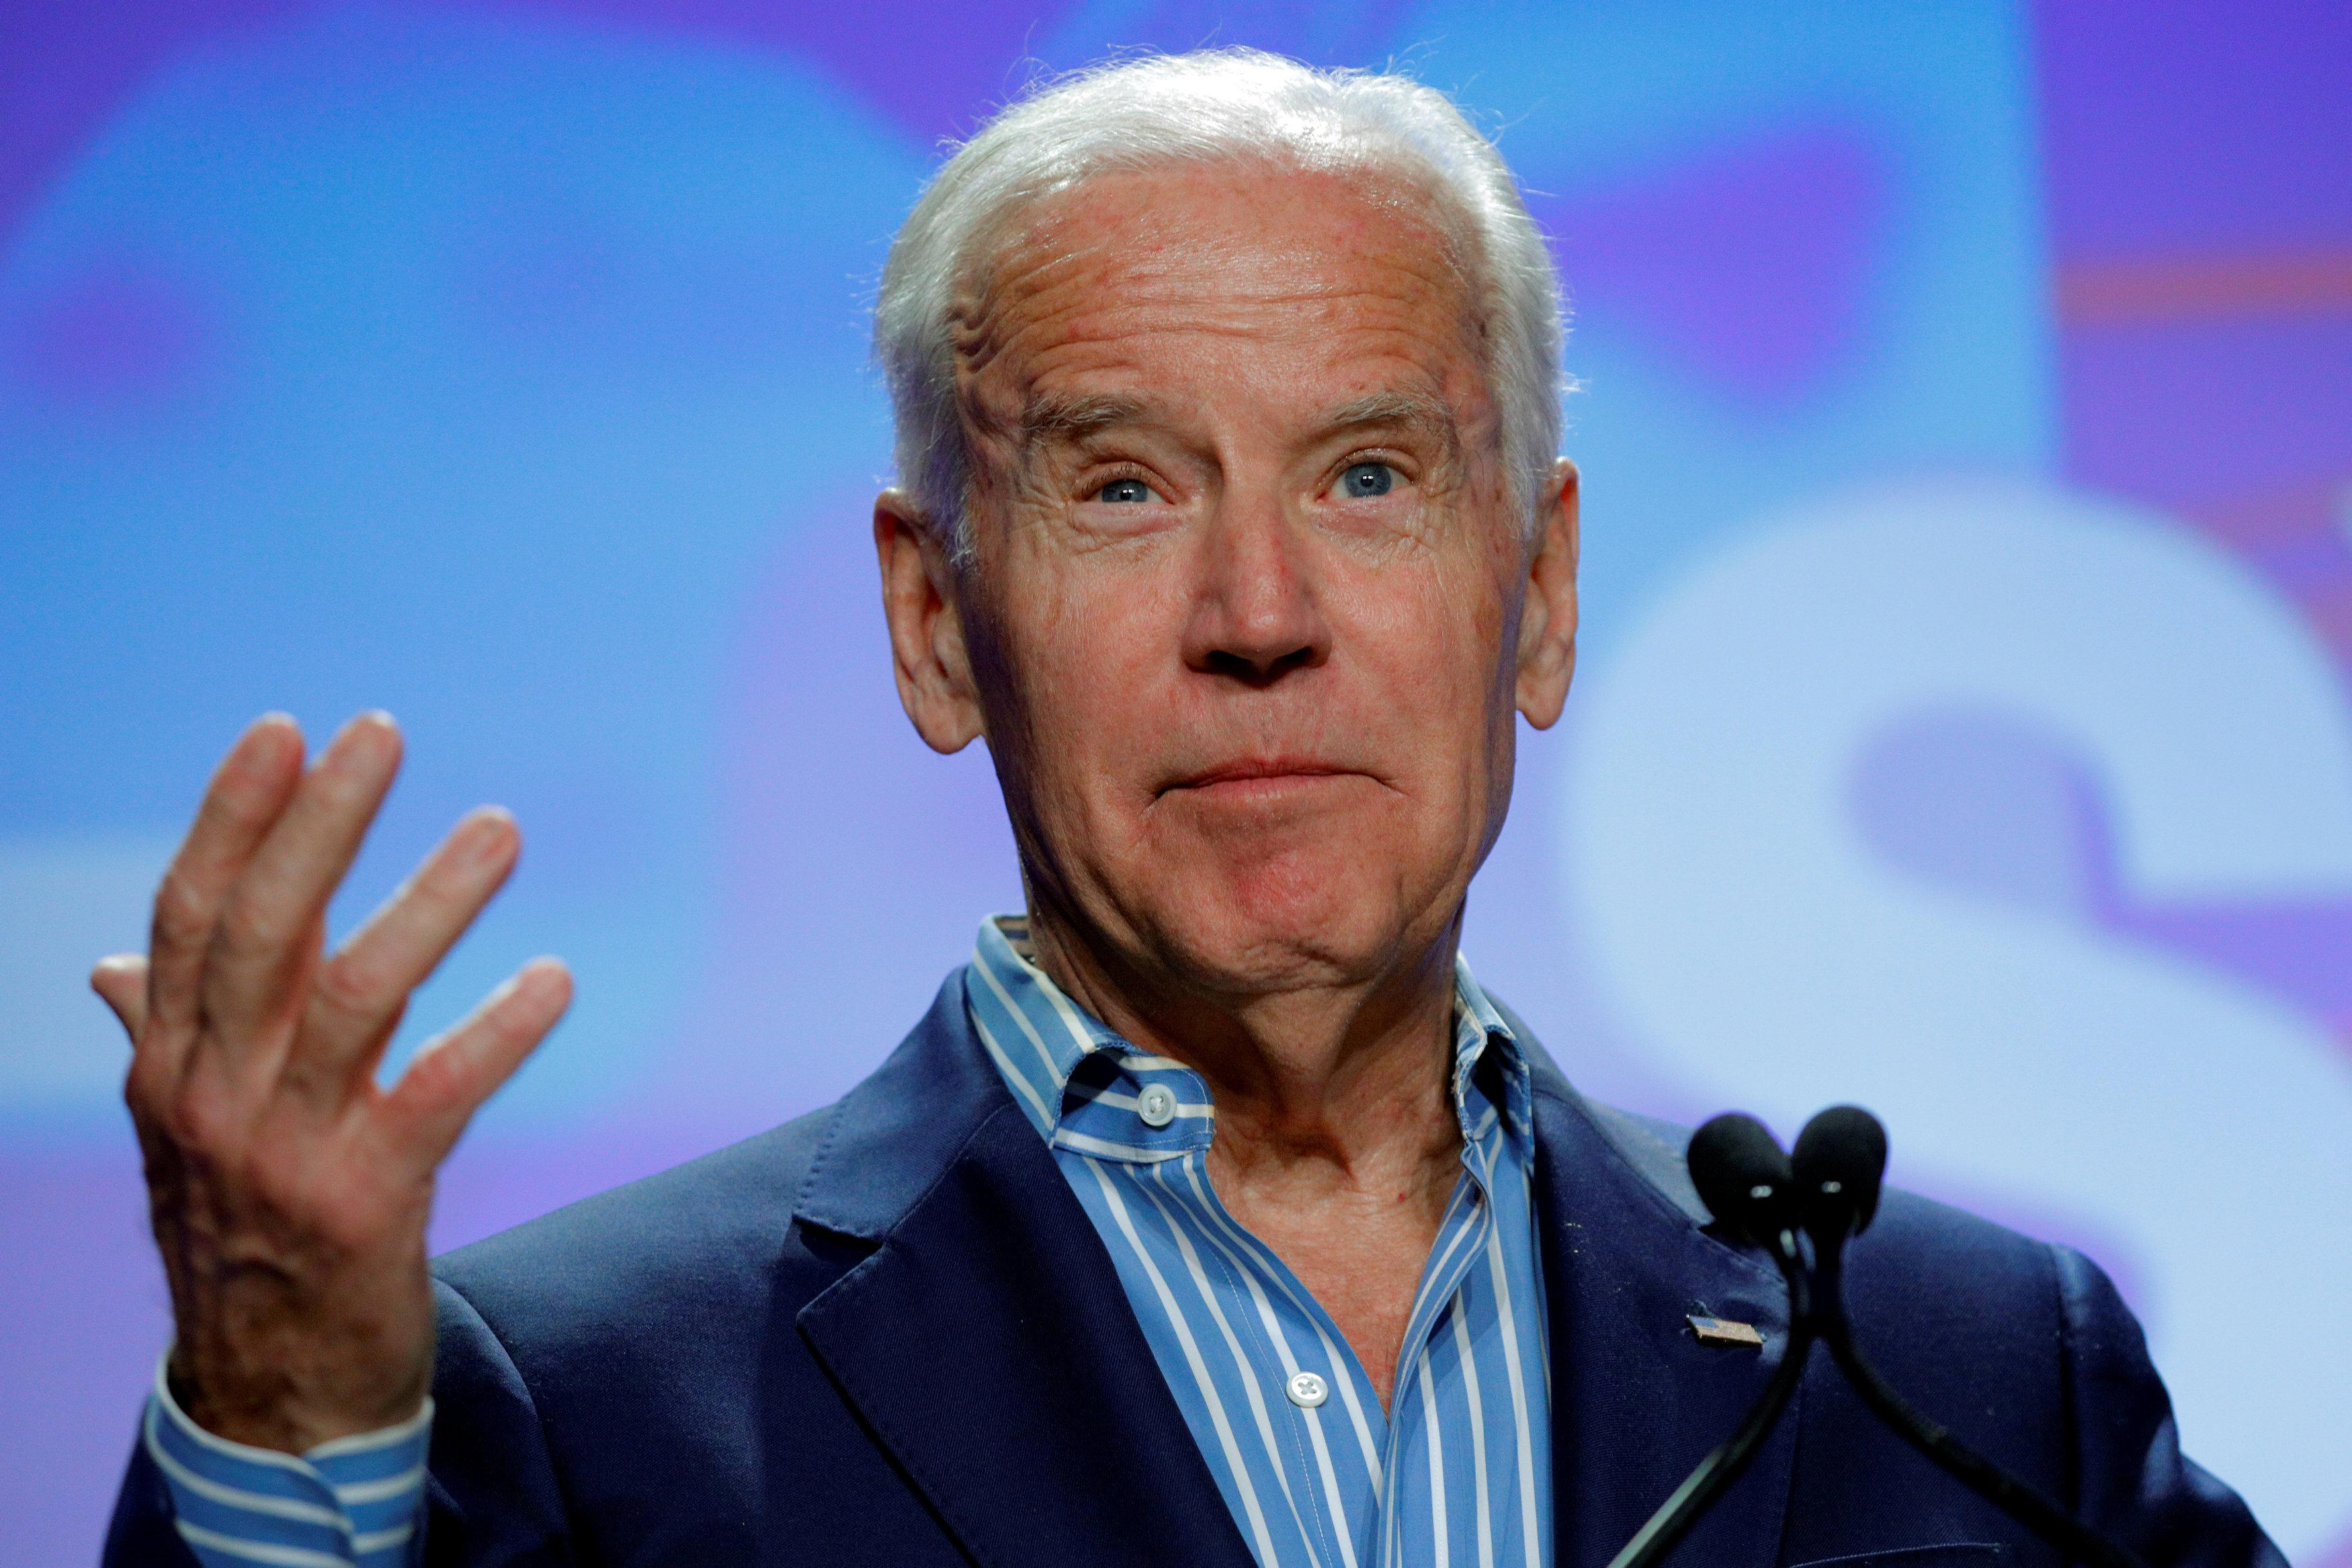 Former Vice President Joe Biden had harsh words for former presidential candidate Hillary Clinton on Thursday night.